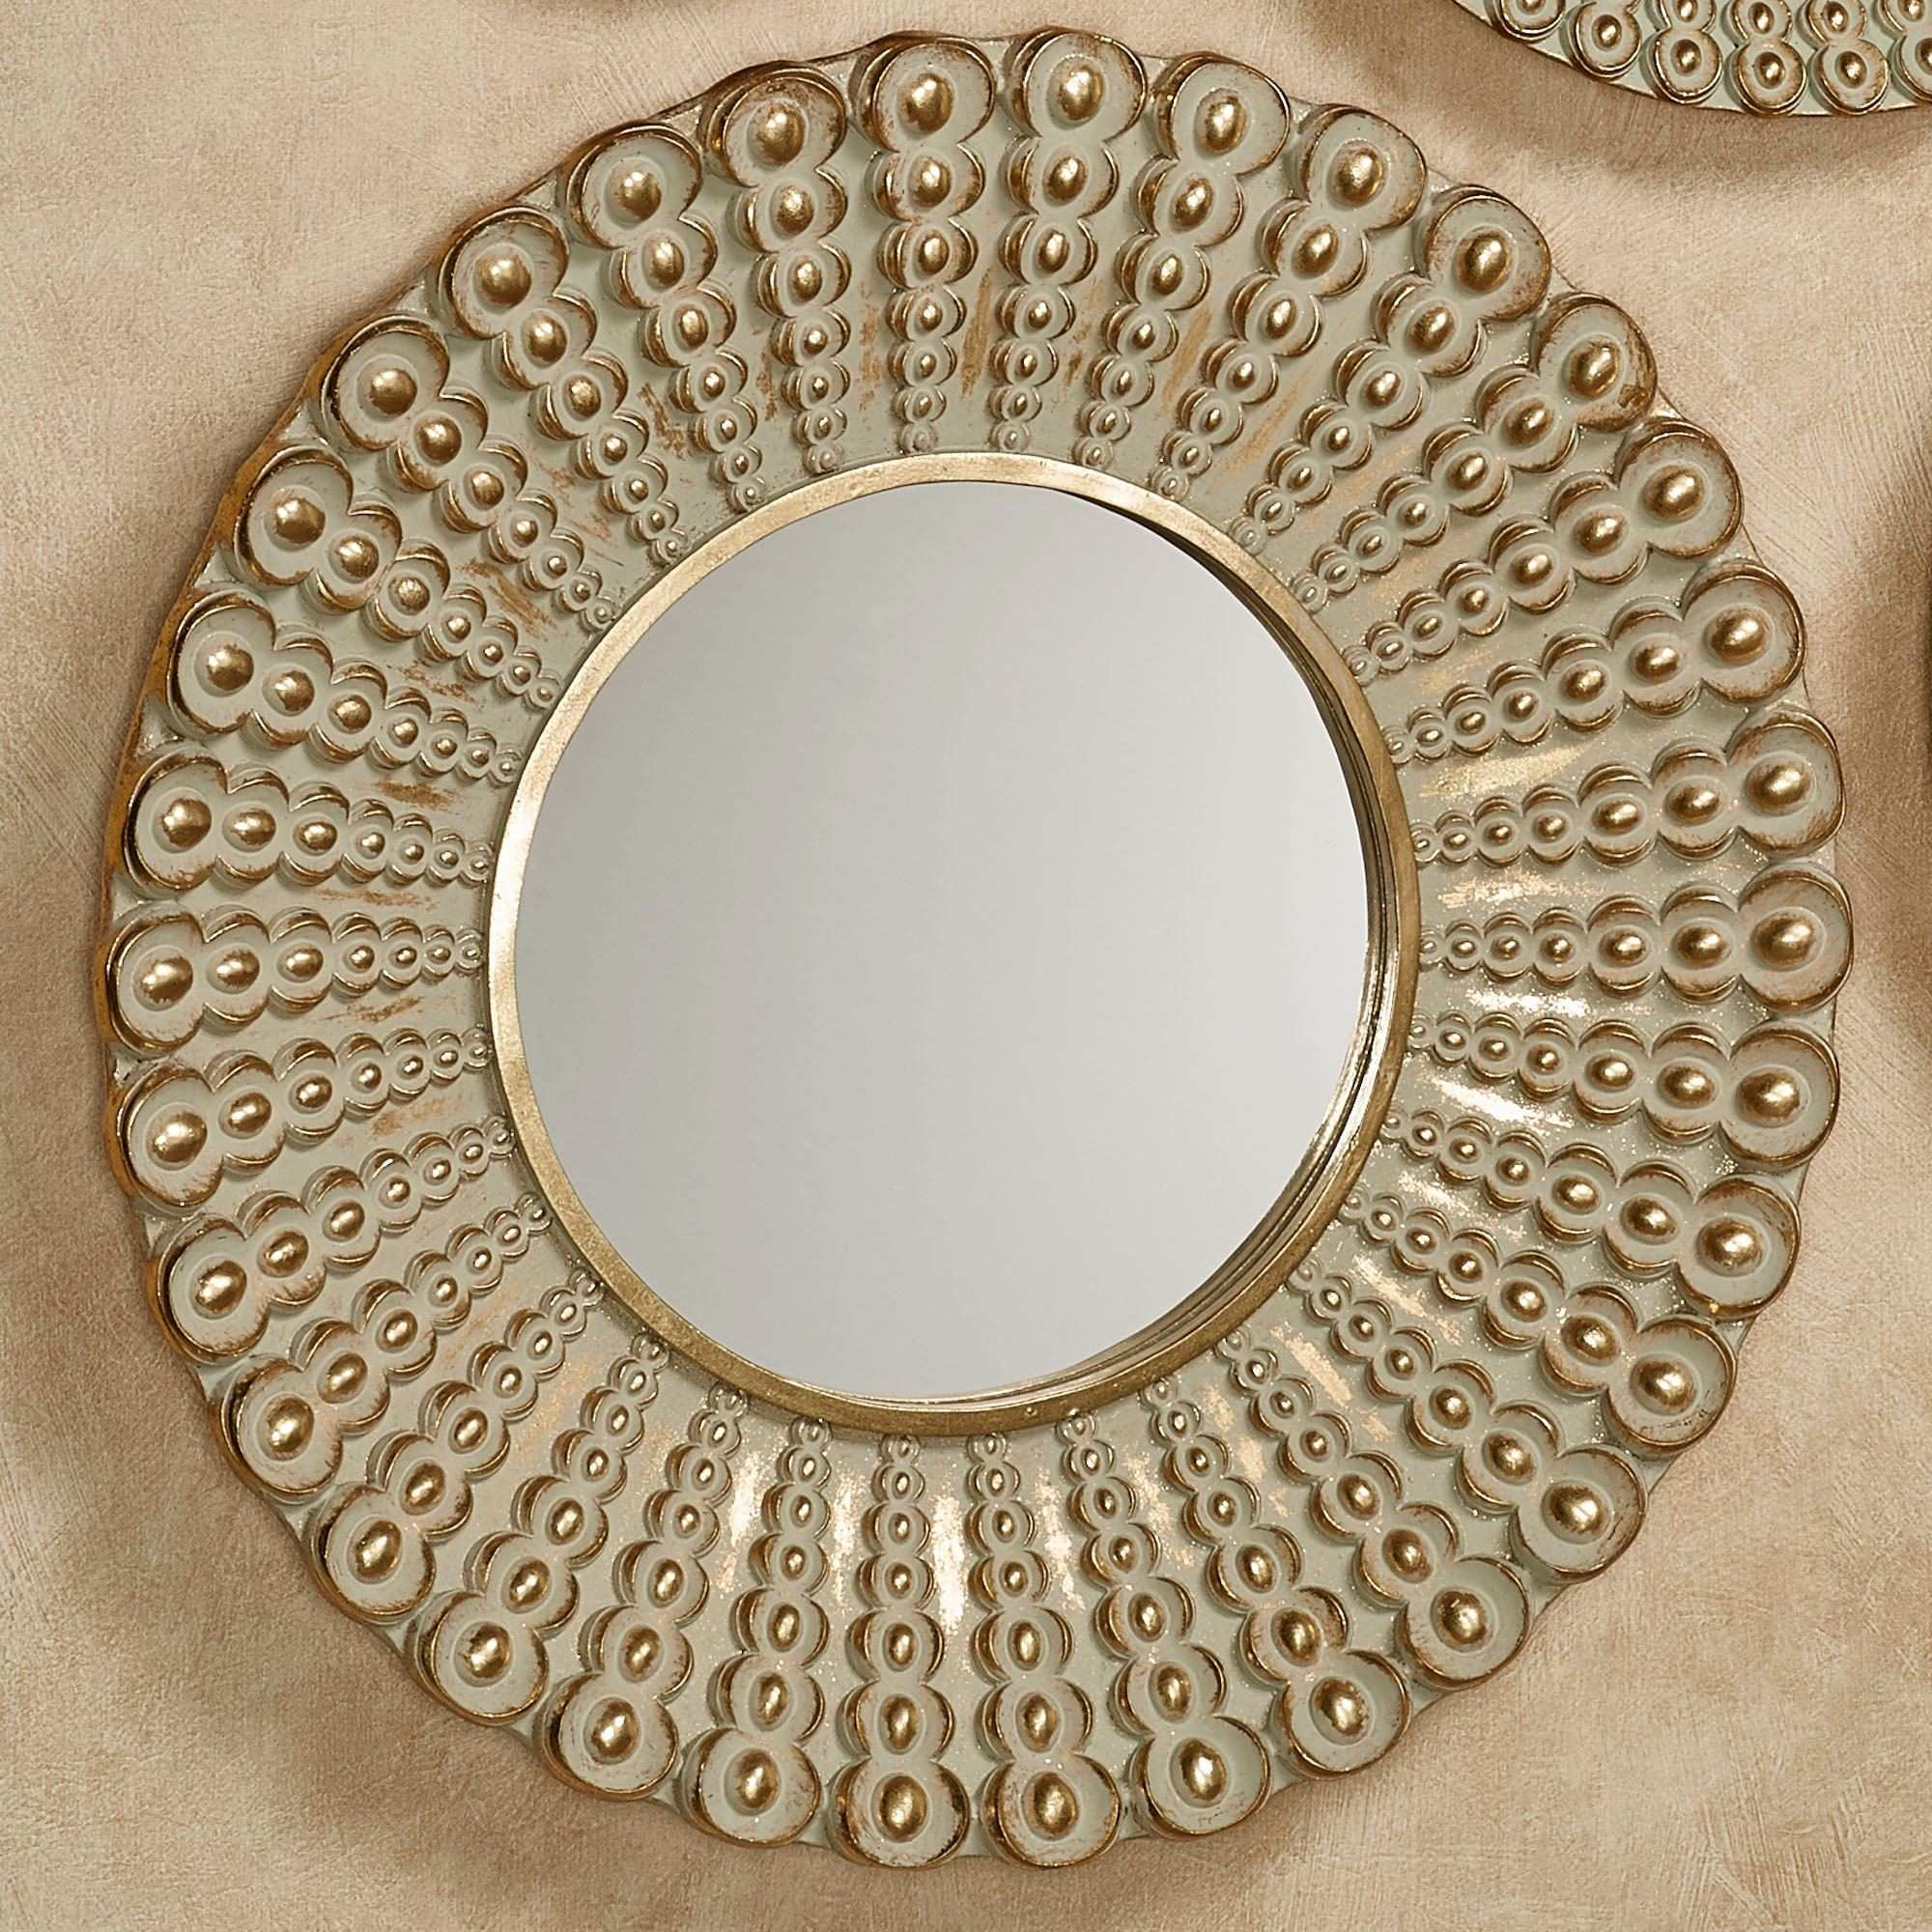 Colors Half Circle Metal Wall Decor As Well As Round Metal Wall